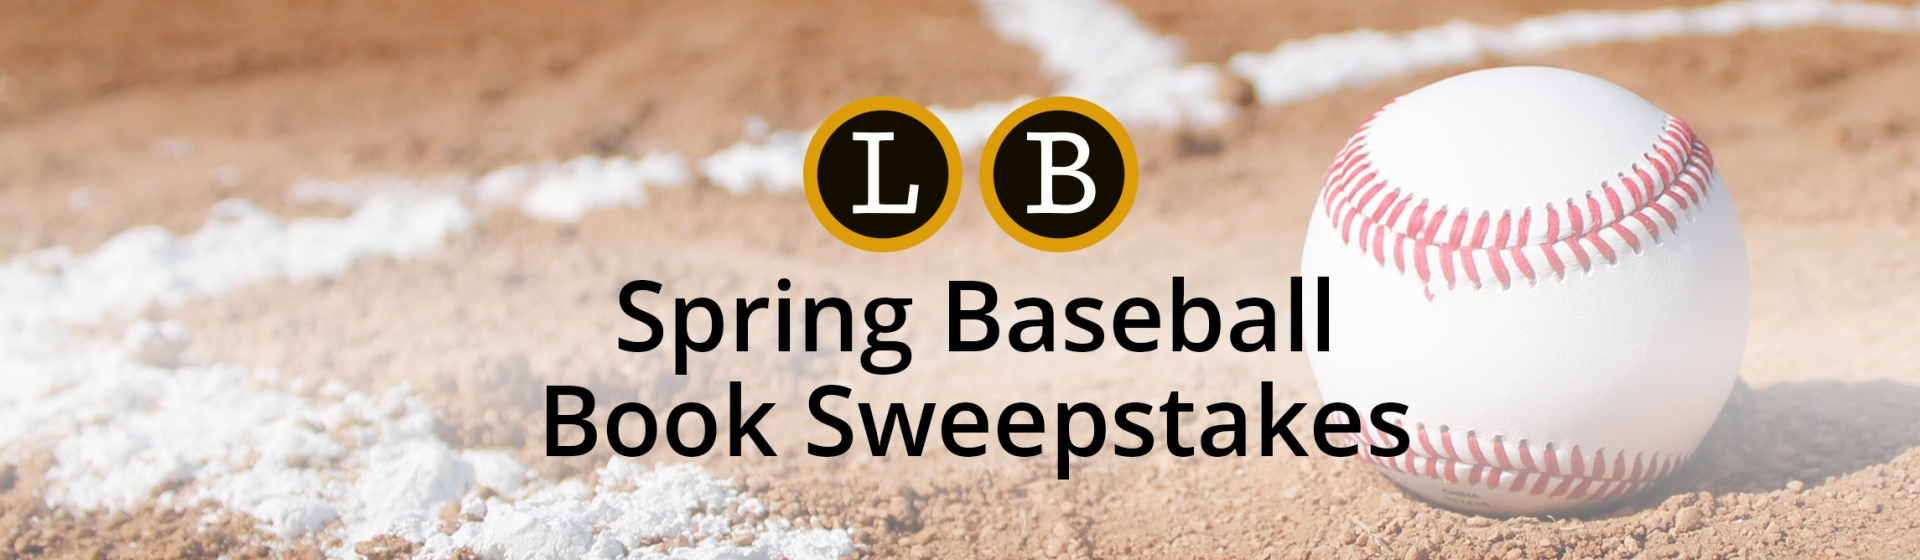 Spring Baseball Book Sweepstakes | Little, Brown and Company